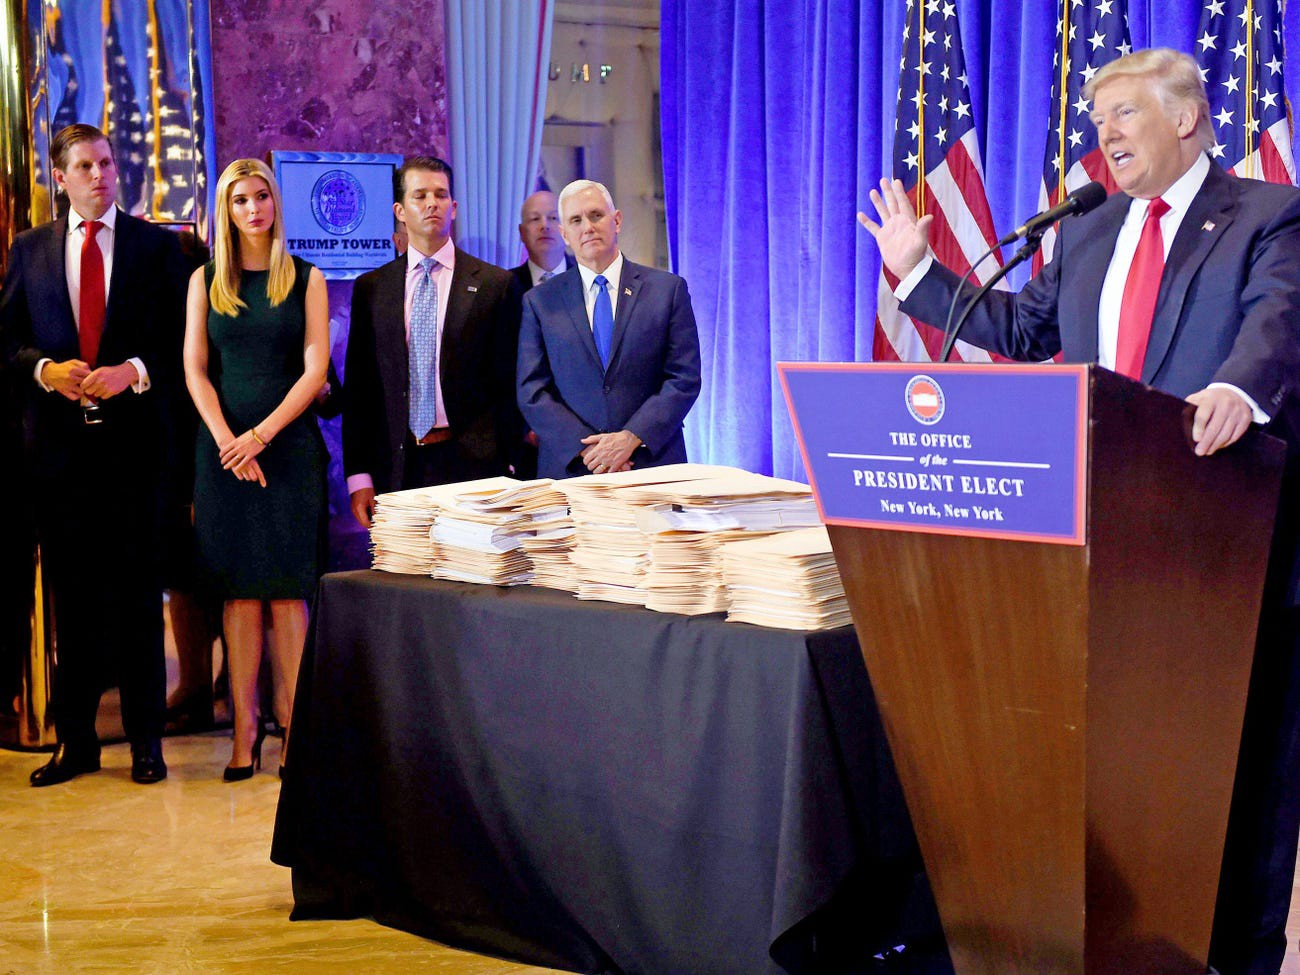 Eric Trump, Ivanka Trump, Donald Trump Jr, and Vice President-elect Mike Pence look on as President-elect Donald Trump conducts a press conference at Trump Tower in New York on January 11, 2017.